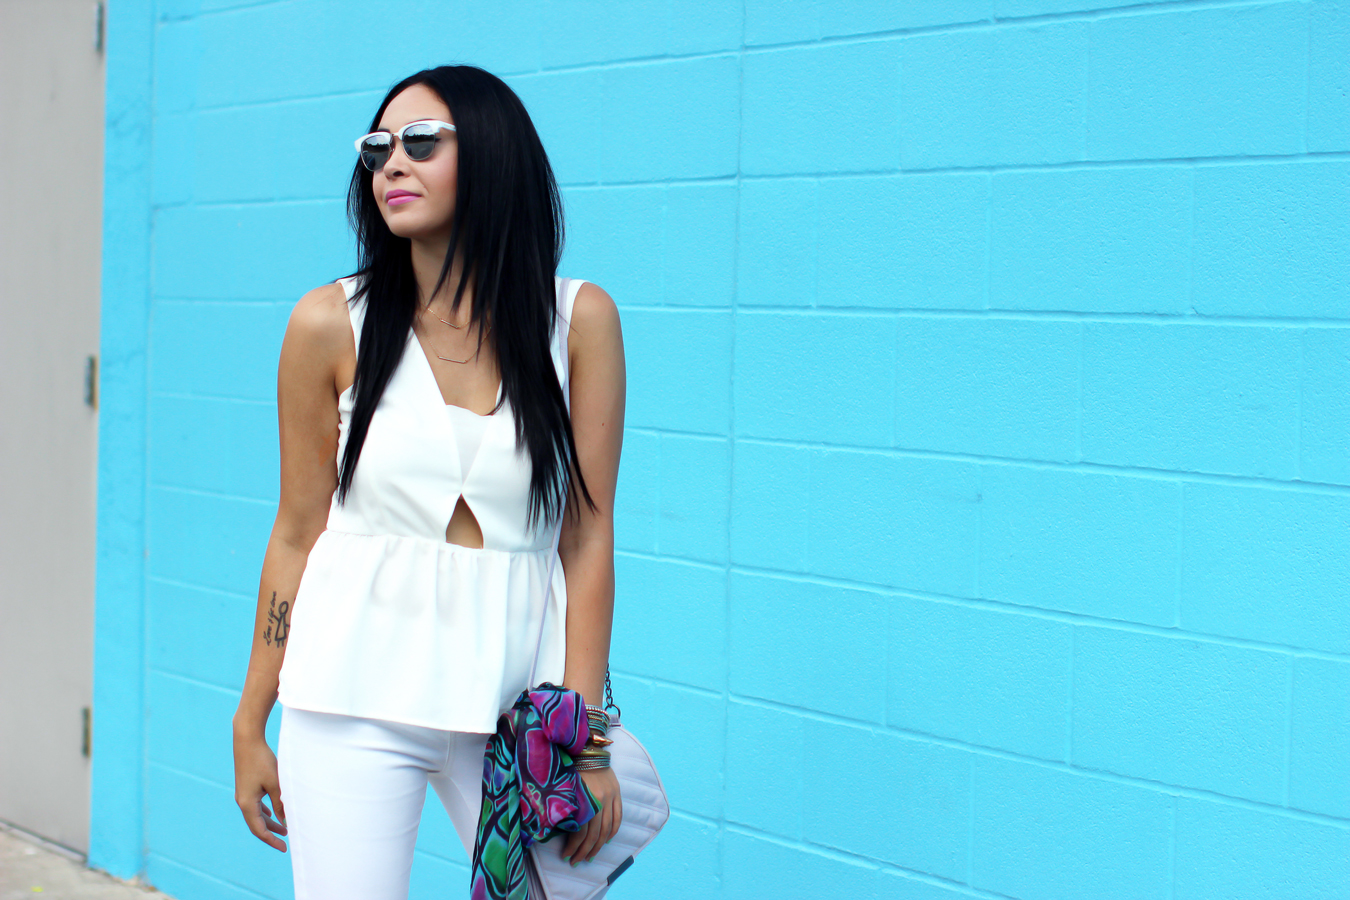 FIXIN-TO-THRILL-WHITE-CUTOUT-SKINNY-JEANS-TRENDS-FW15-SUMMER-TRENDY-CHIC-GLAM-AUSTIN-FASHION-BLOG-OUTFIT-TEXAS-STYLE-7